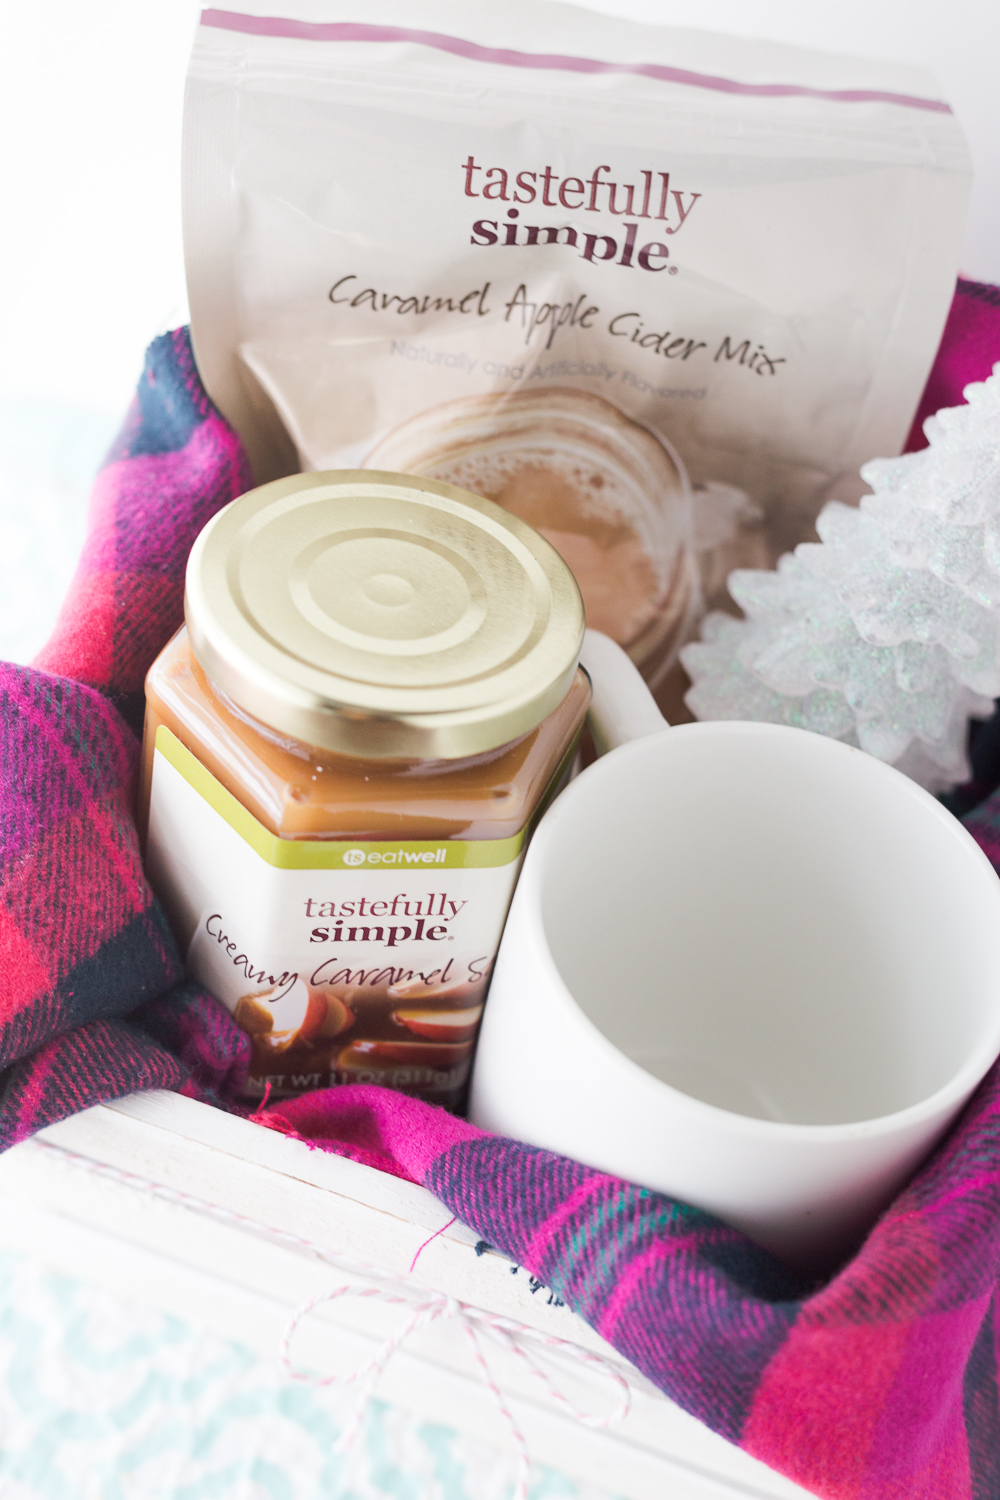 This Caramel Apple Cider makes for a great Warm Wishes Gift Basket. It's perfect for family, friends and neighbors.